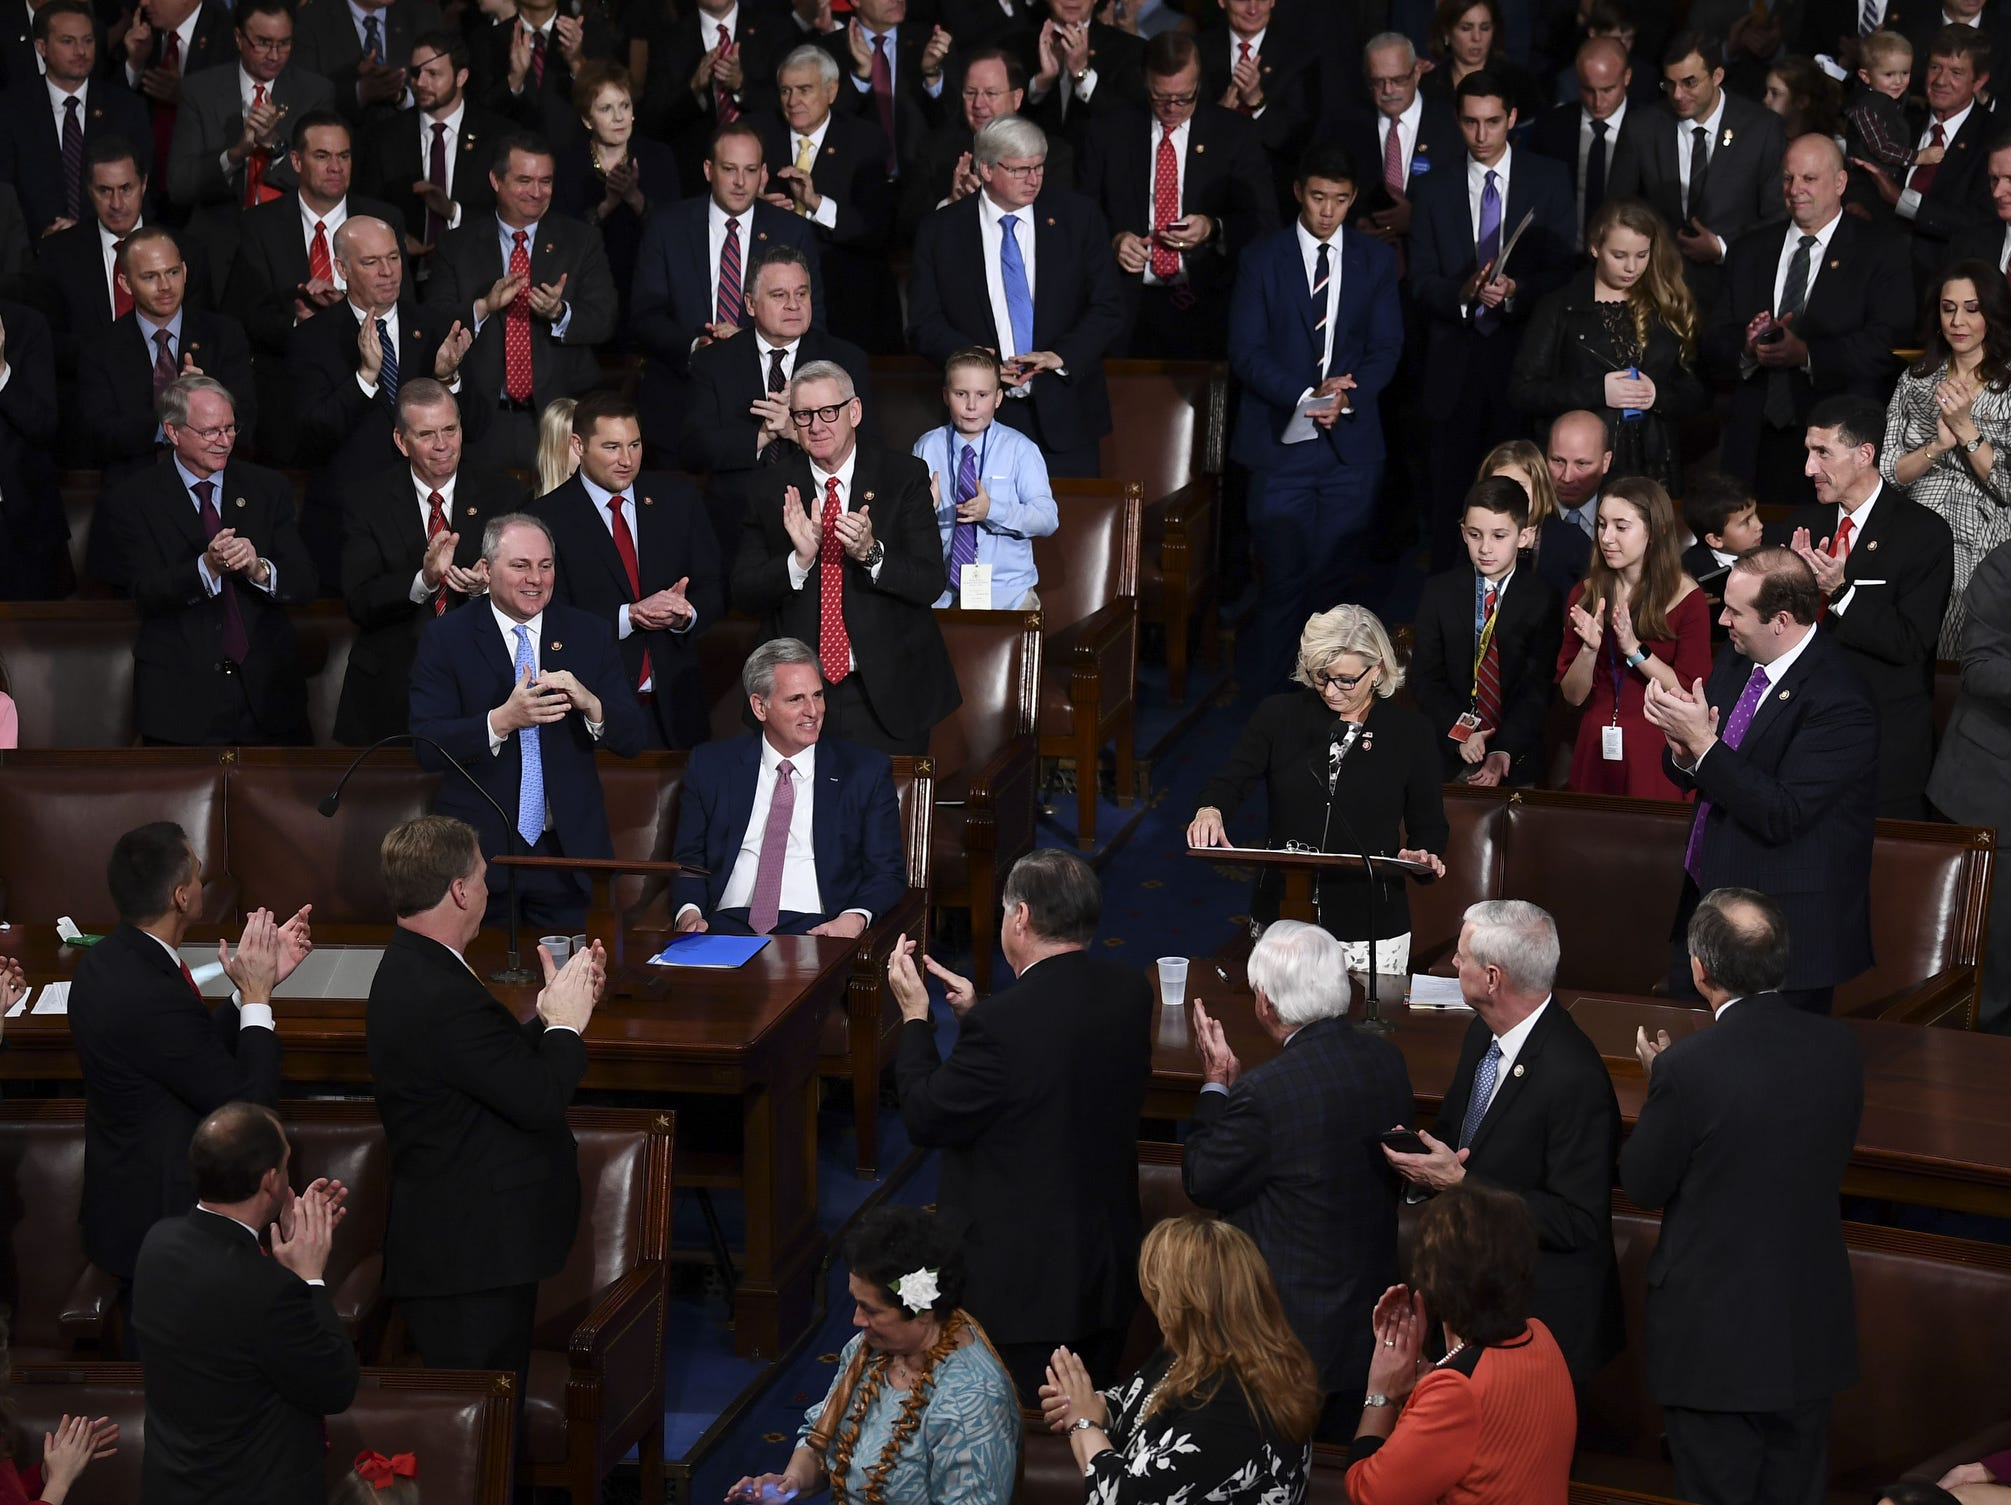 Liz Cheney, right,  incoming GOP House Conference chairwoman speaks at the start of the 116th Congress and swearing-in ceremony on the floor of the US House of Representatives at the US Capitol.